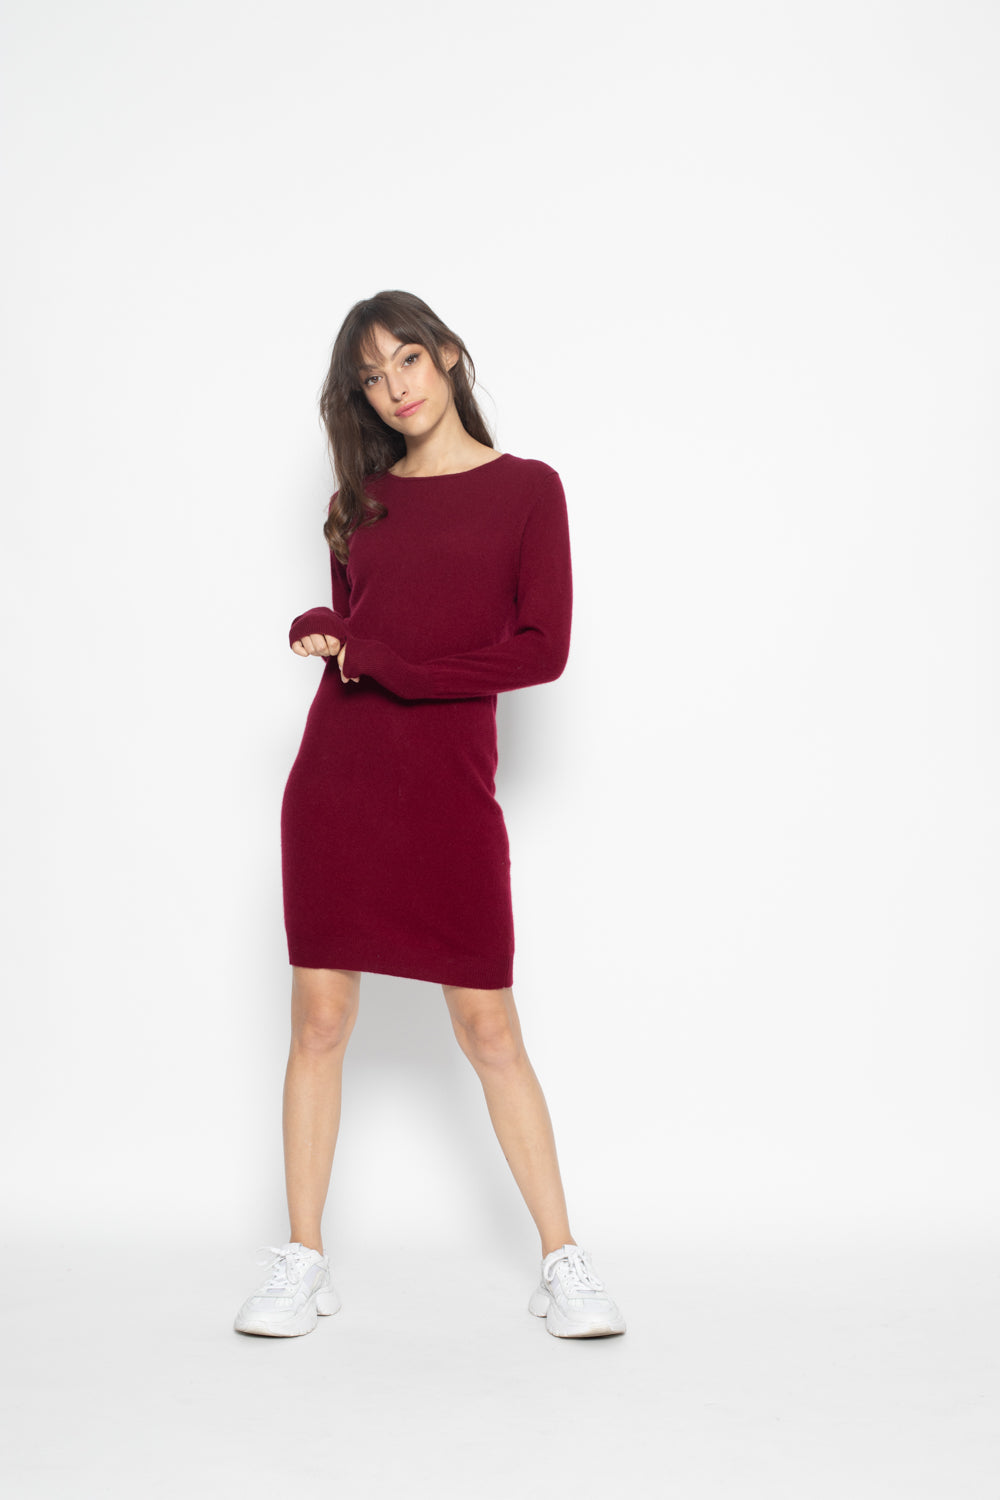 Robe Col Rond armet Burgundy 100% Cachemire